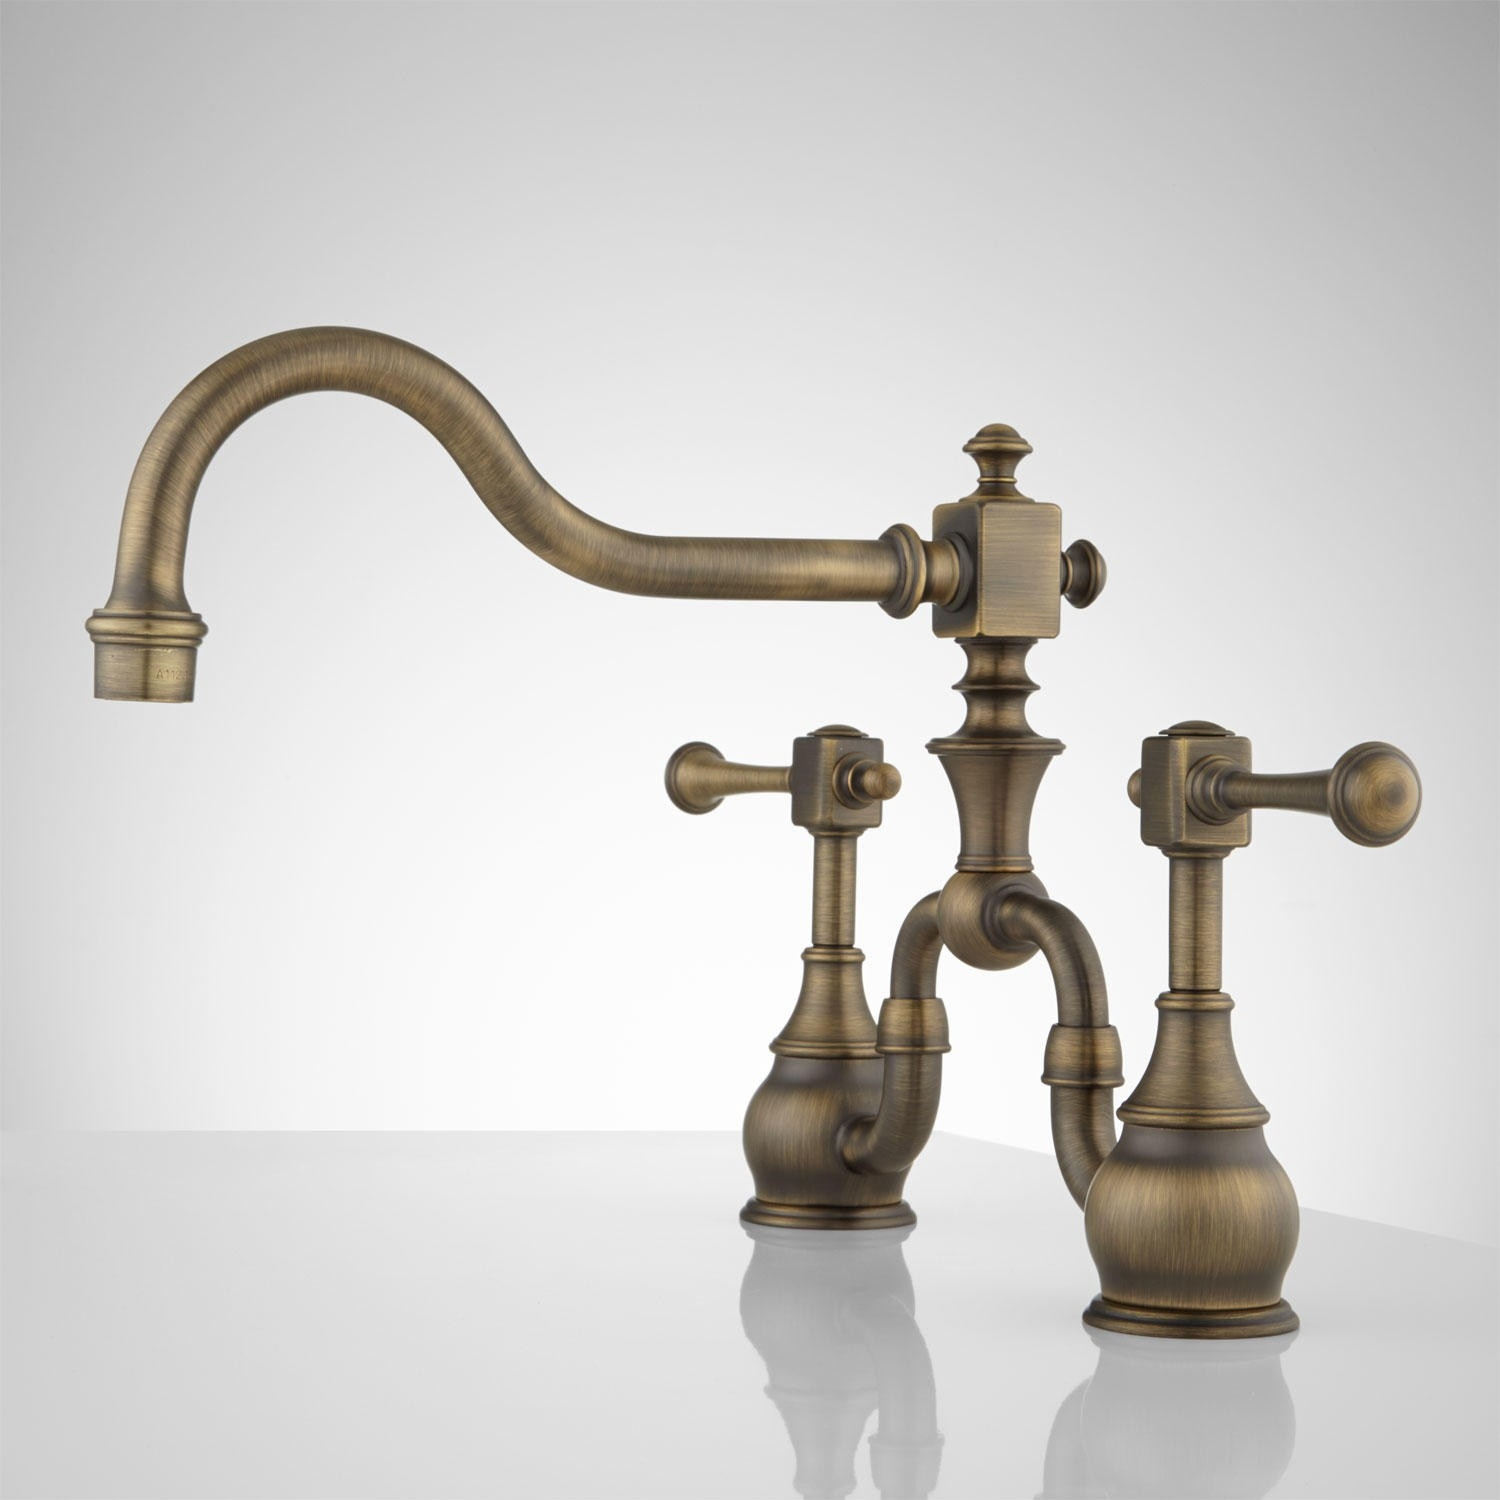 Ideas, pictures of old kitchen faucets pictures of old kitchen faucets vintage kitchen faucets set up the homy design 1500 x 1500  .